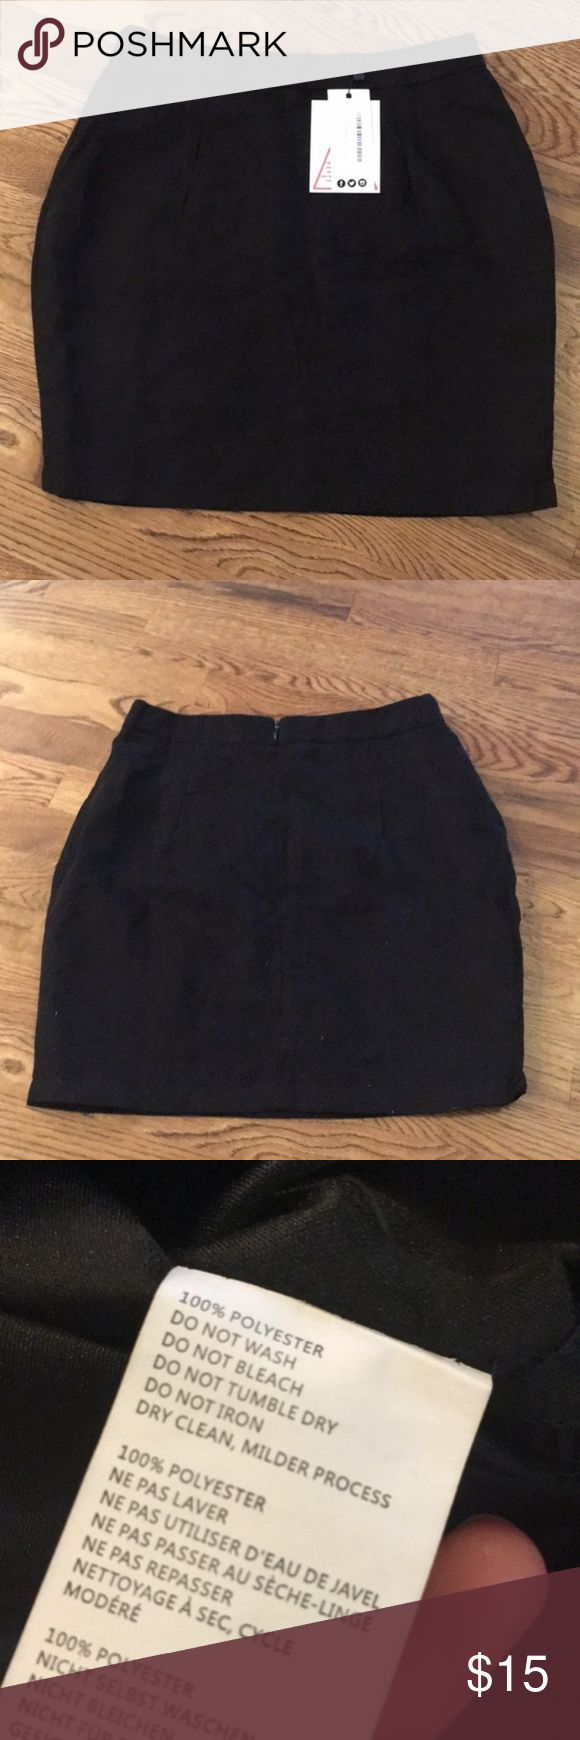 "NWT Boohoo Soft Suedette A-like Mini Skirt Bought from another seller, but it's a little tight on me.   Brand new with tags. Super cute skirt! Black. Mini skirt. Zips up back. Dry clean milder process  Top to bottom is 17"". The waist is almost 14"" laying flat Boohoo Skirts Mini"